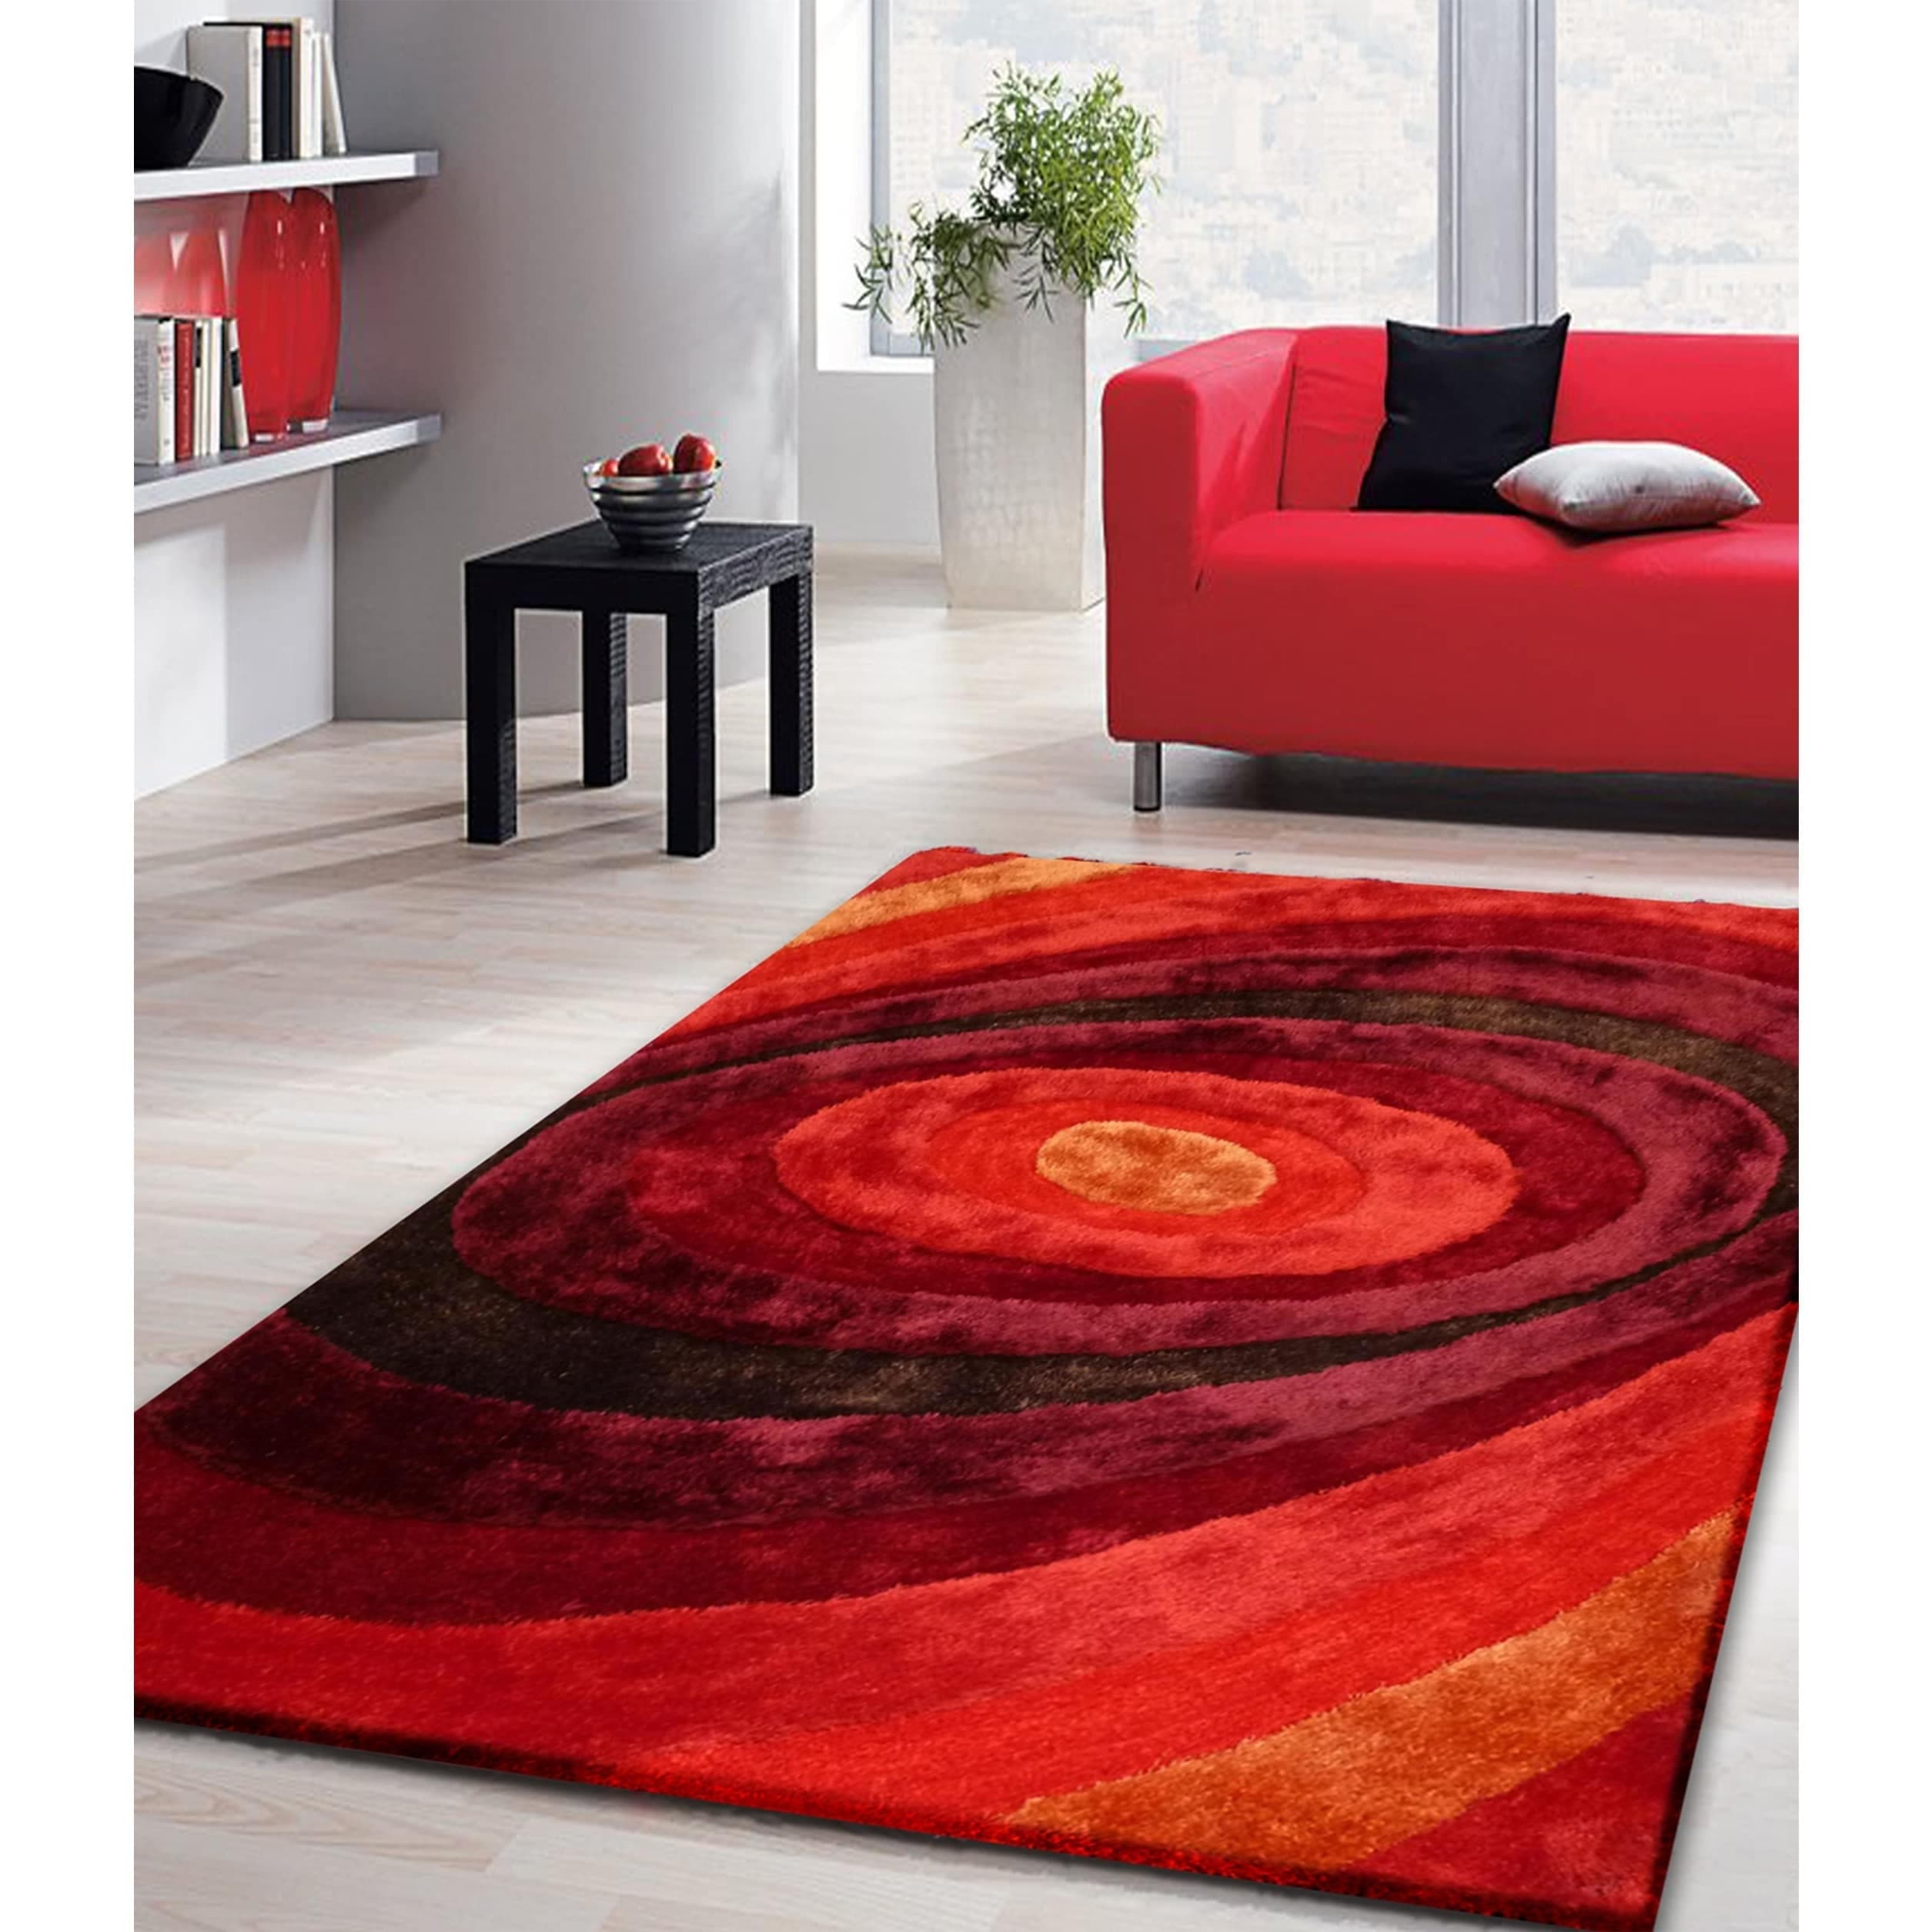 Vibrant Universe Red Orange Burgundy Hand Tufted Area Rug 5 X 7 Brown Rugs For